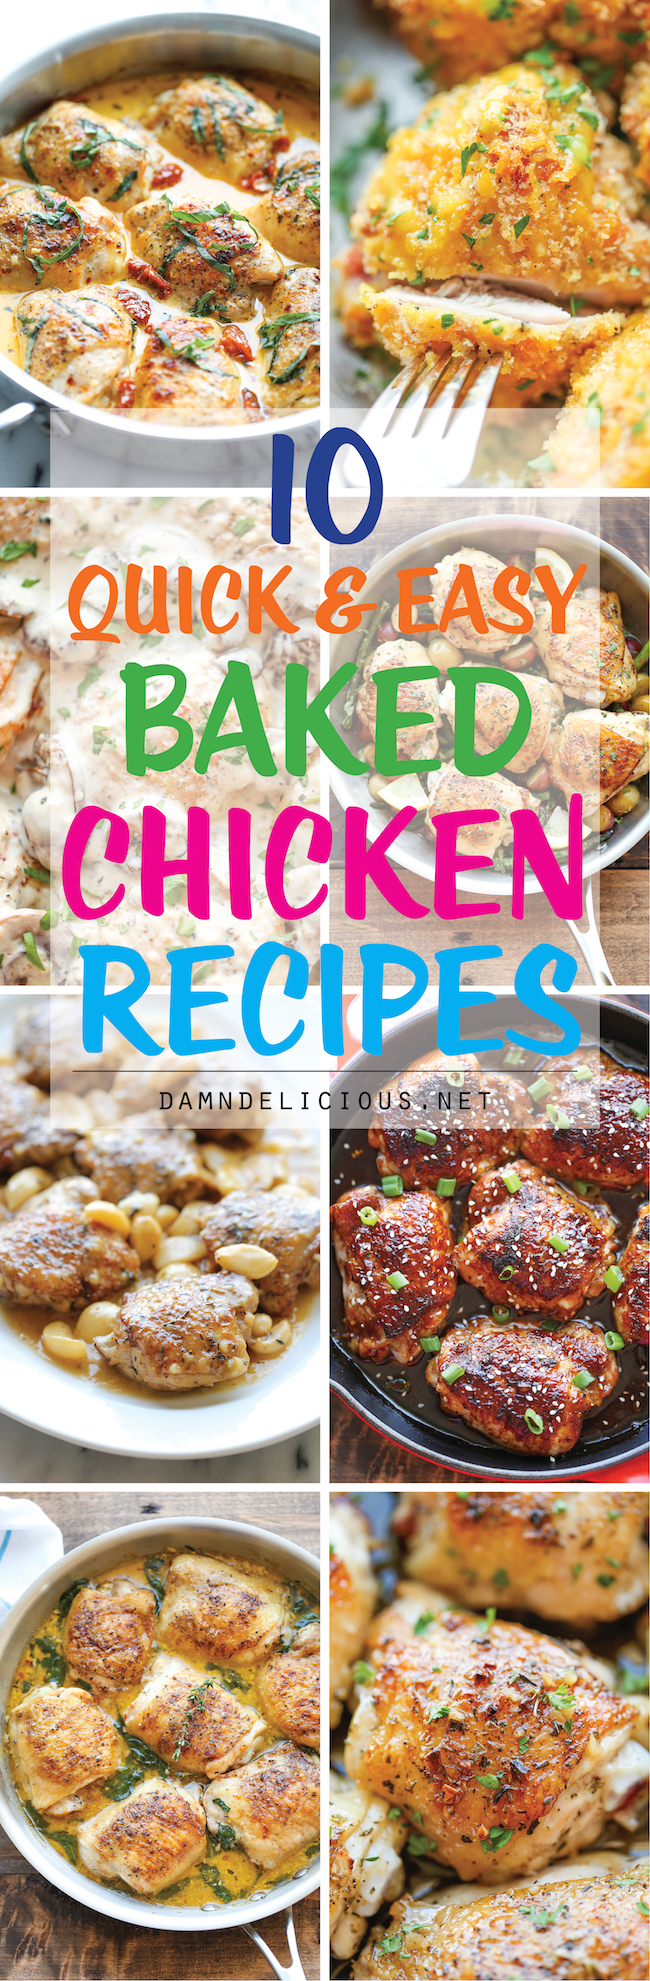 10 quick and easy baked chicken recipes damn delicious 10 quick and easy baked chicken recipes forumfinder Image collections